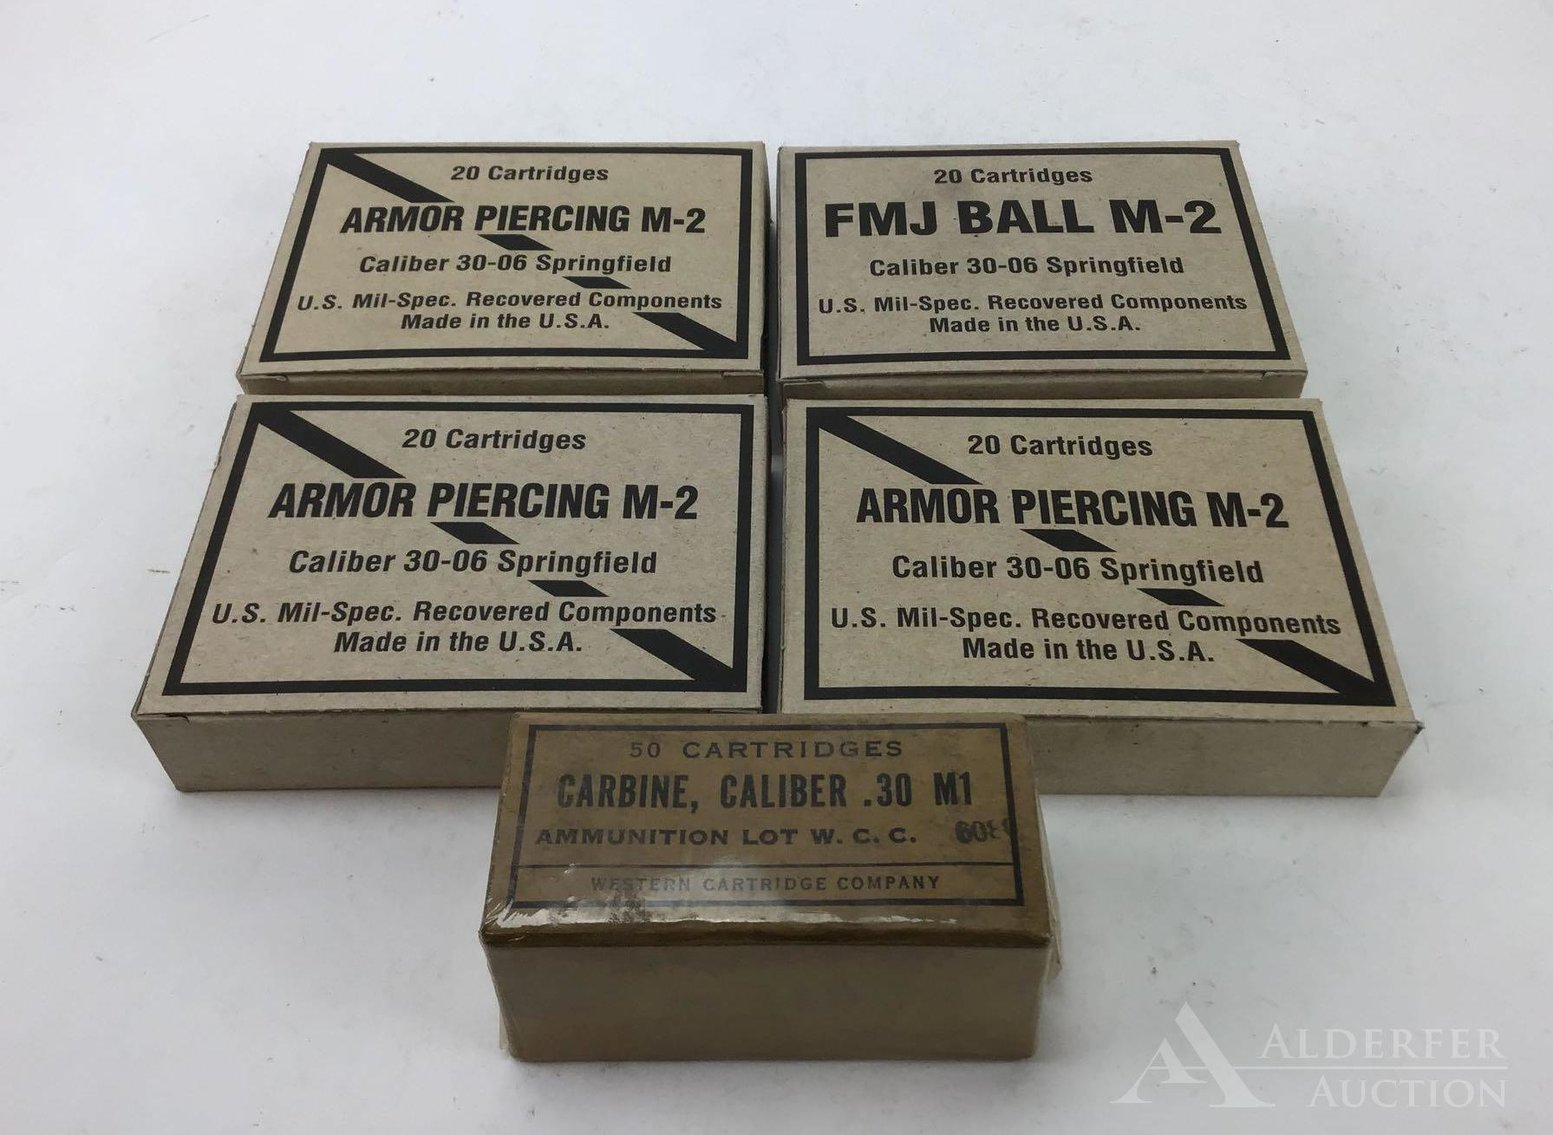 Firearm Accessories and Ammo |  August 18, 2020 at 8:00 PM